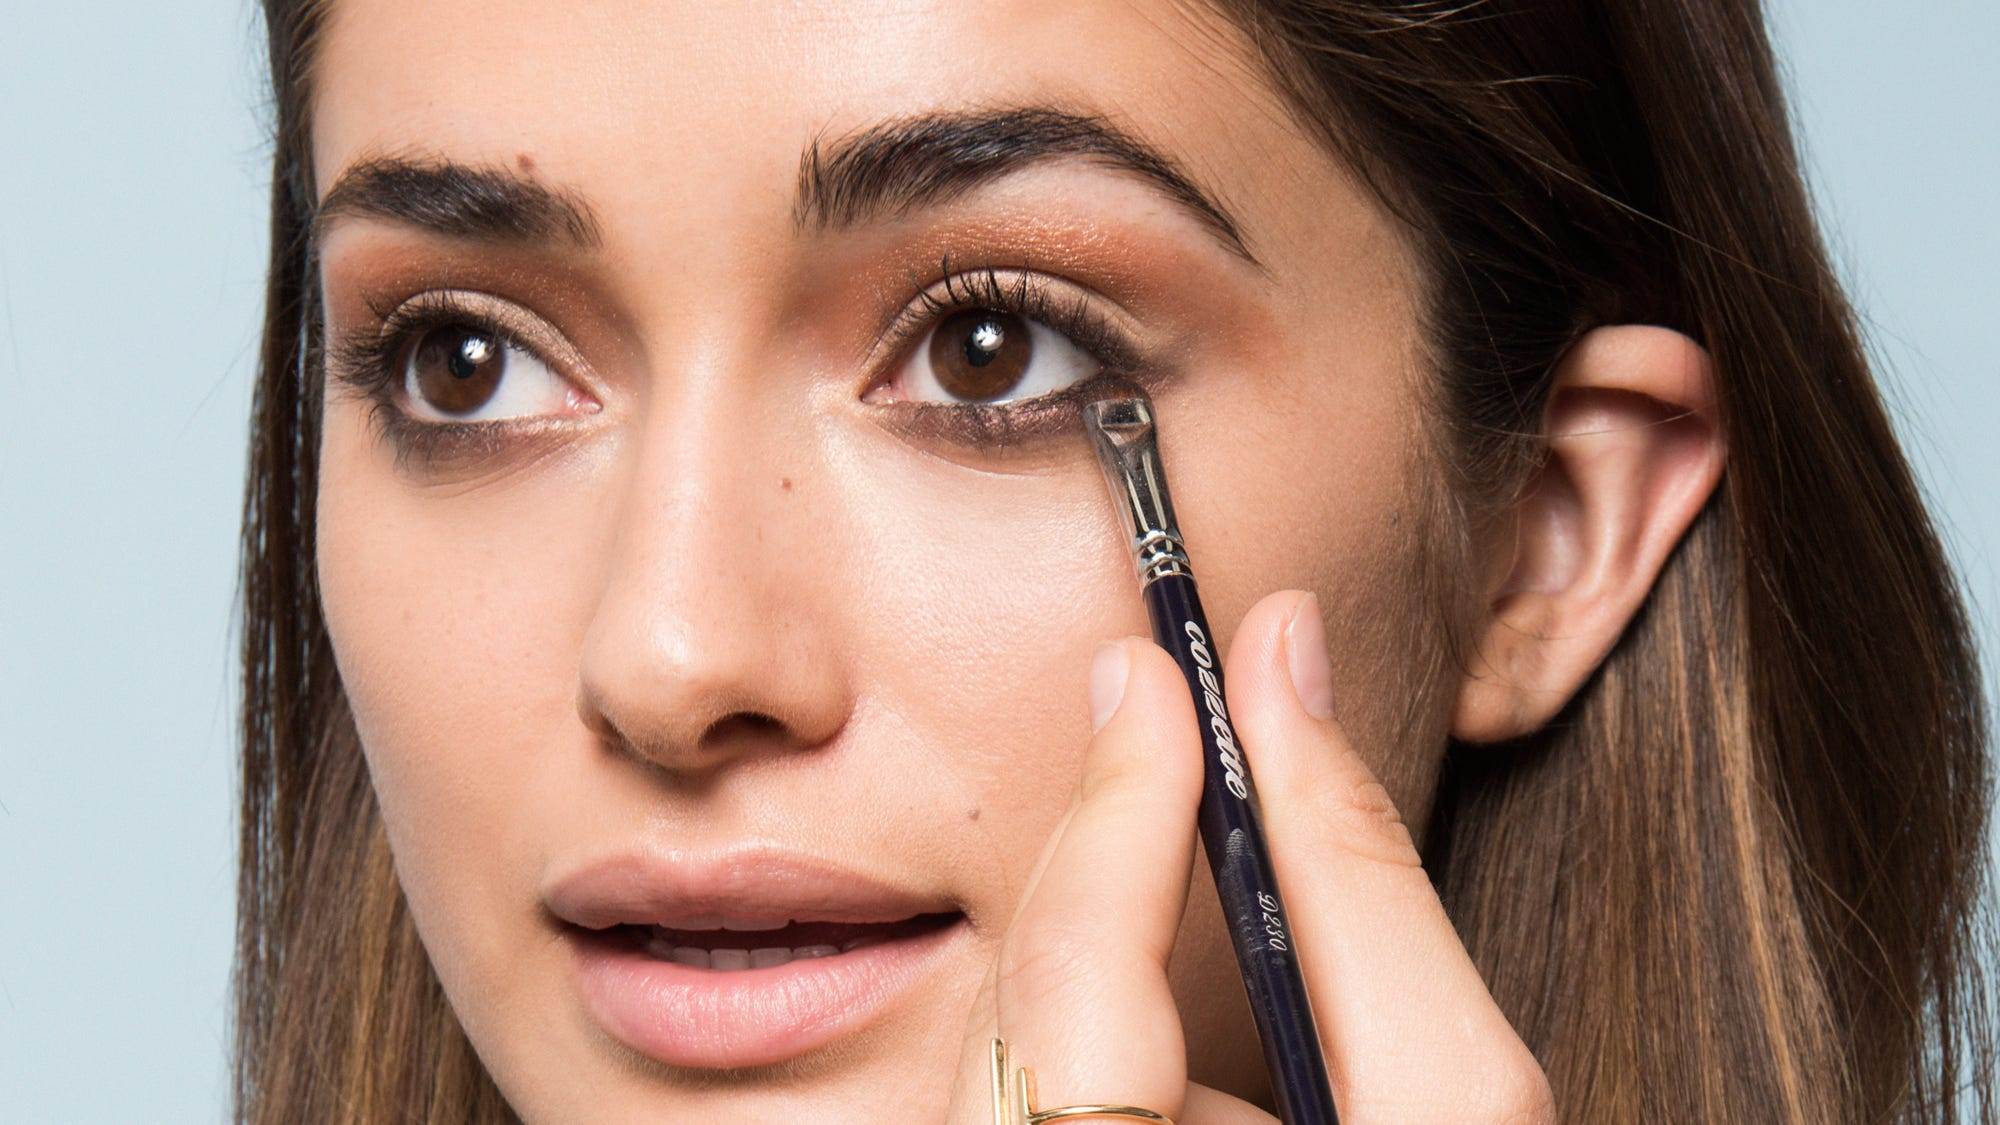 Makeup that makes your eyes look bigger